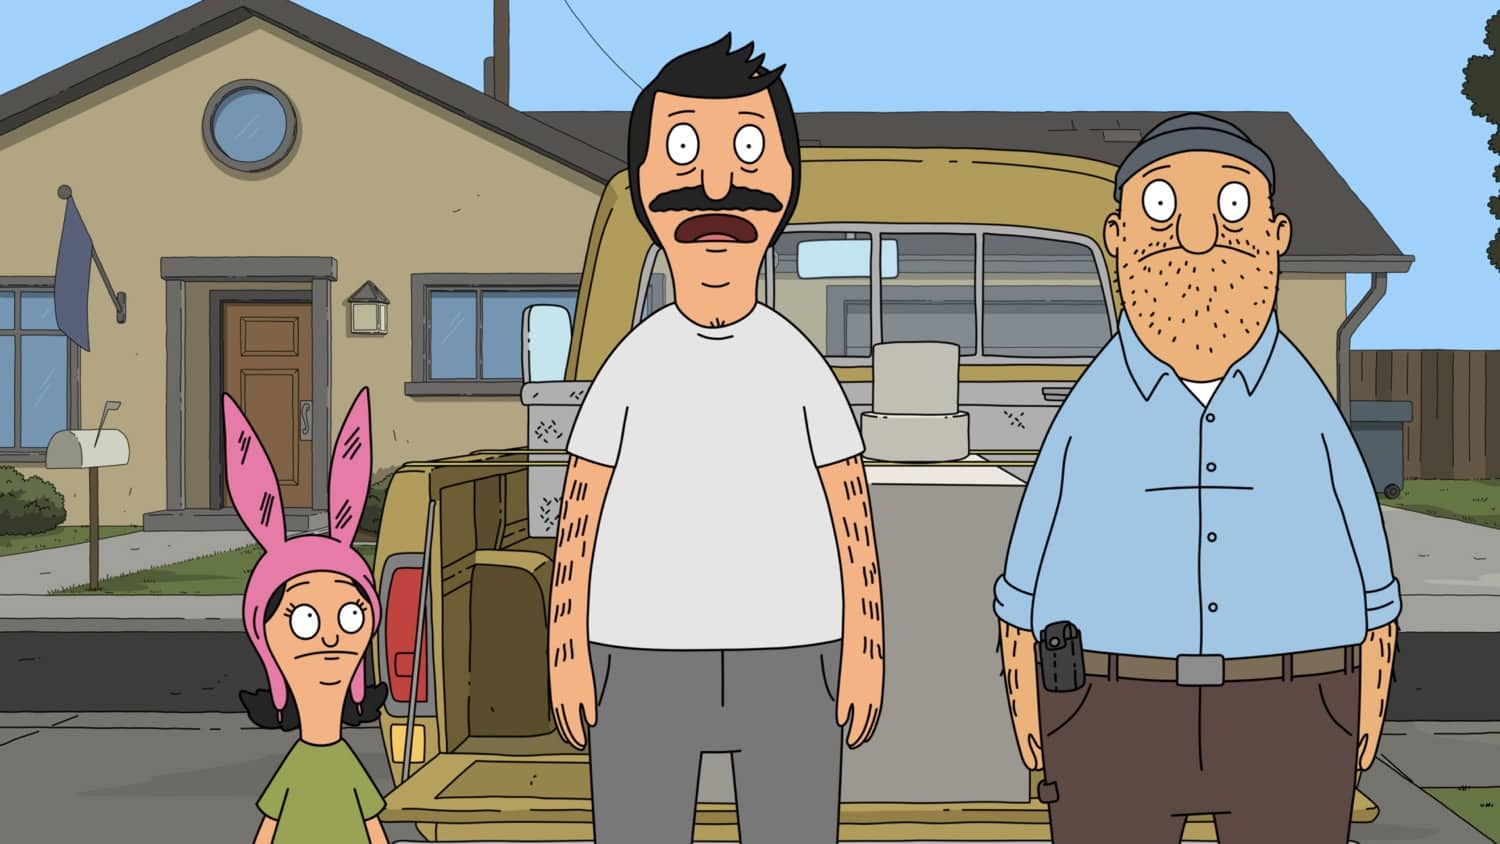 "BOB'S BURGERS Season 11 Episode 14 : When Linda and Tina go to the shoe store, Gene accidentally is left home by himself. Meanwhile, Bob, Louise and Teddy go to buy restaurant equipment from a creepy guy whom Bob found on the internet in the ìMr. Lonely Farts"" episode of BOBíS BURGERS airing Sunday, March 14 (9:00-9:30 PM ET/PT) on FOX. BOBíS BURGERS © 2021 by 20th Television."